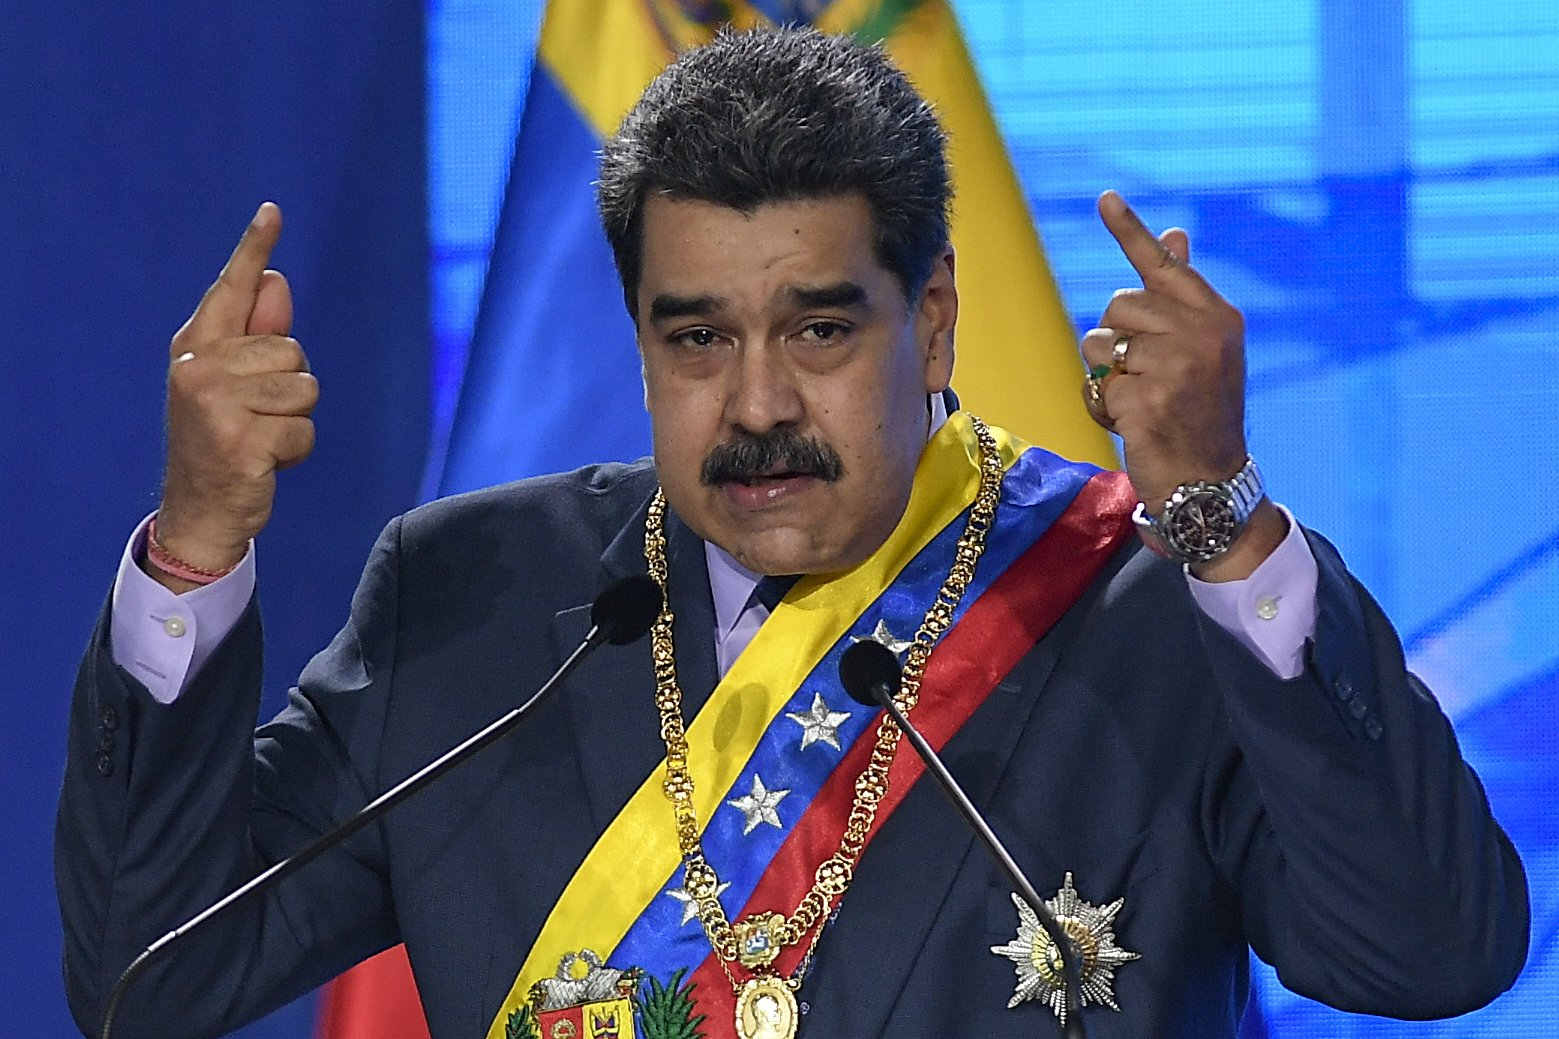 Venezuela hired Democratic Party donor for $6 million